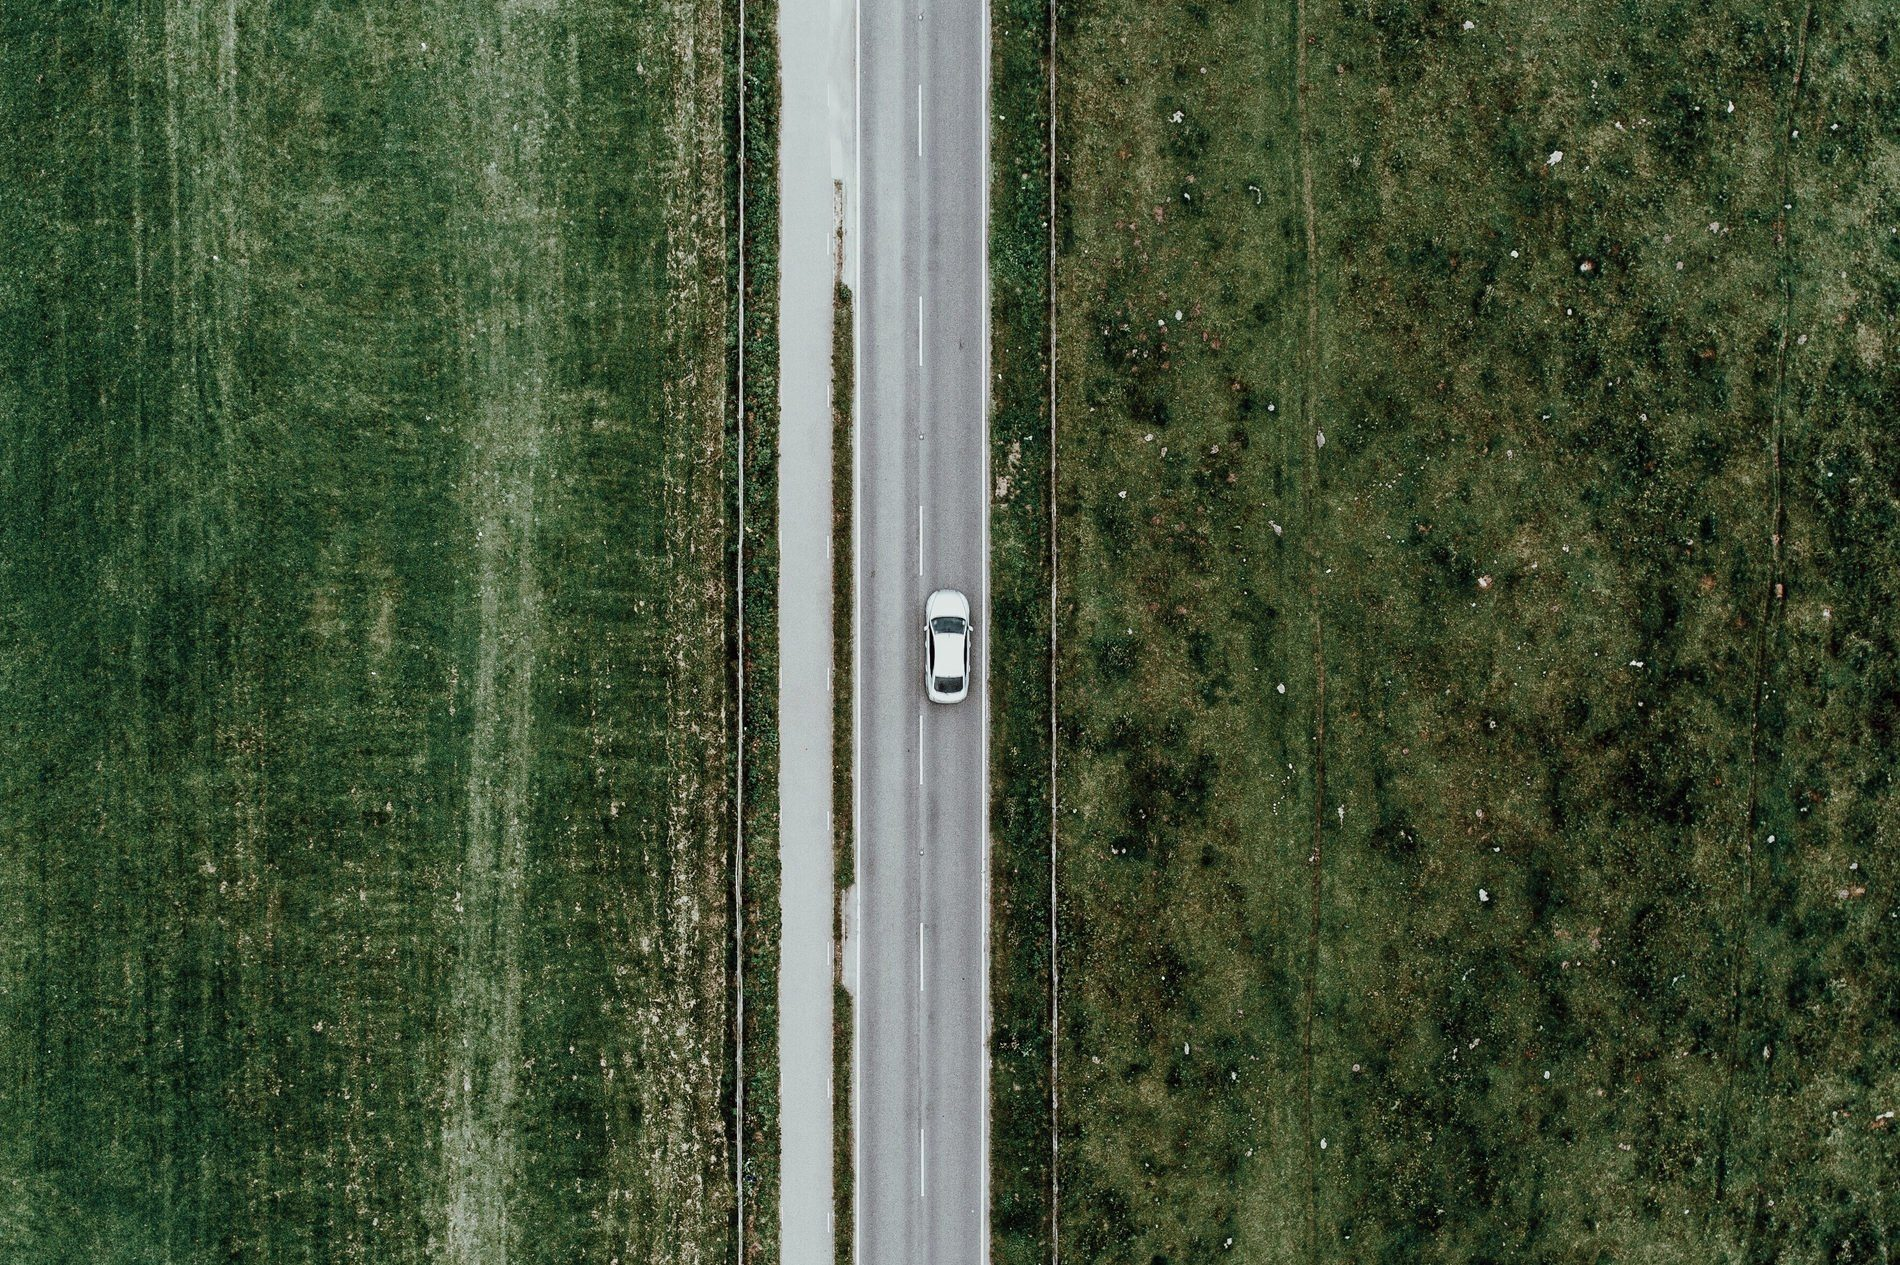 Aerial View Of Car On Road